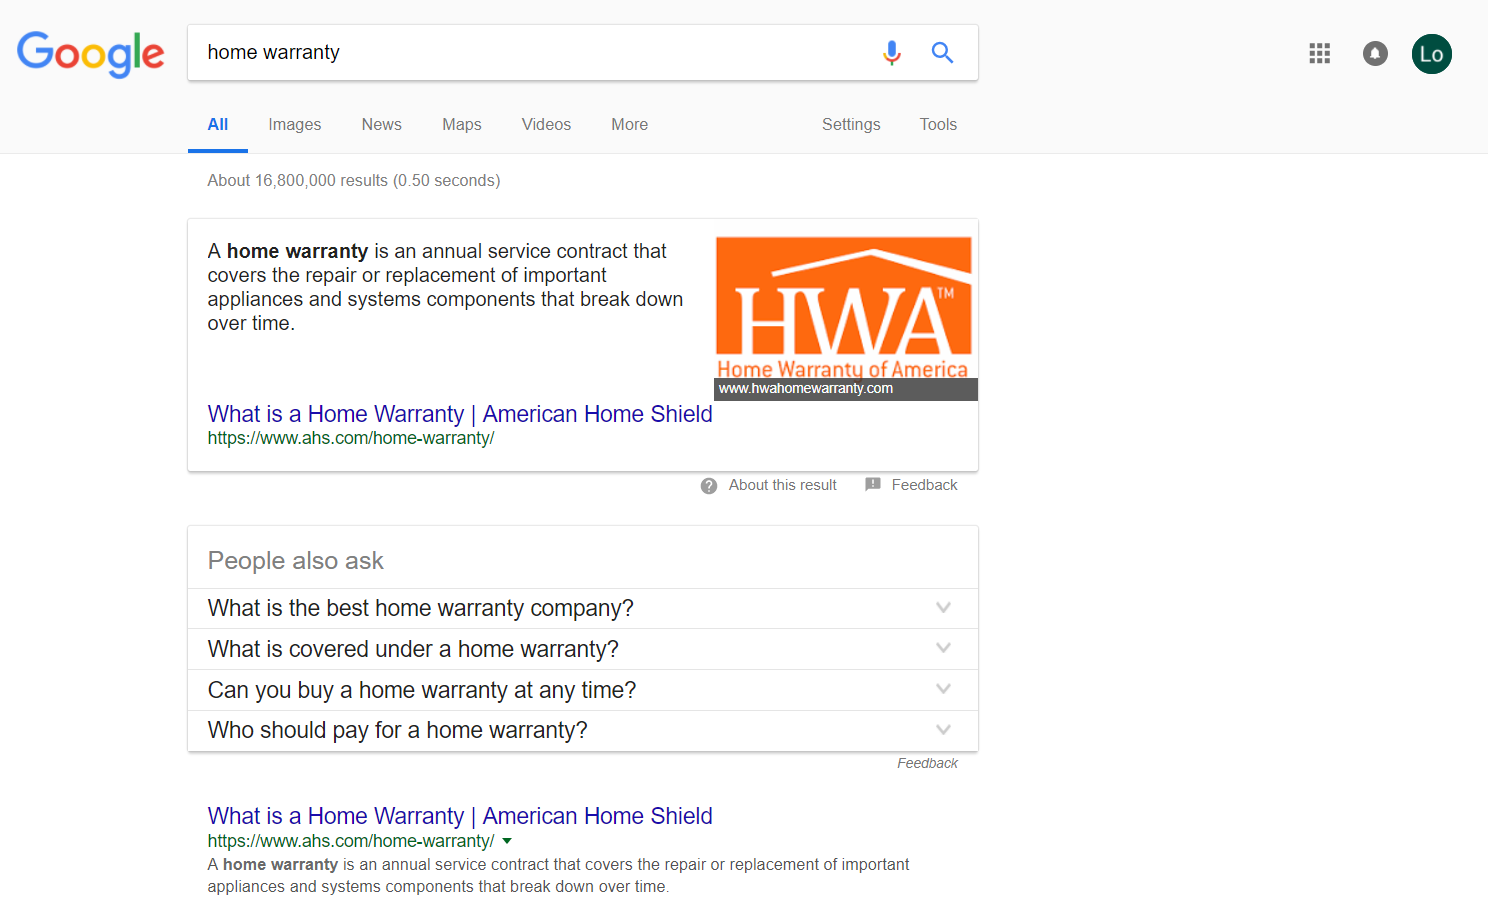 ahs home warranty company 1st spot on serp